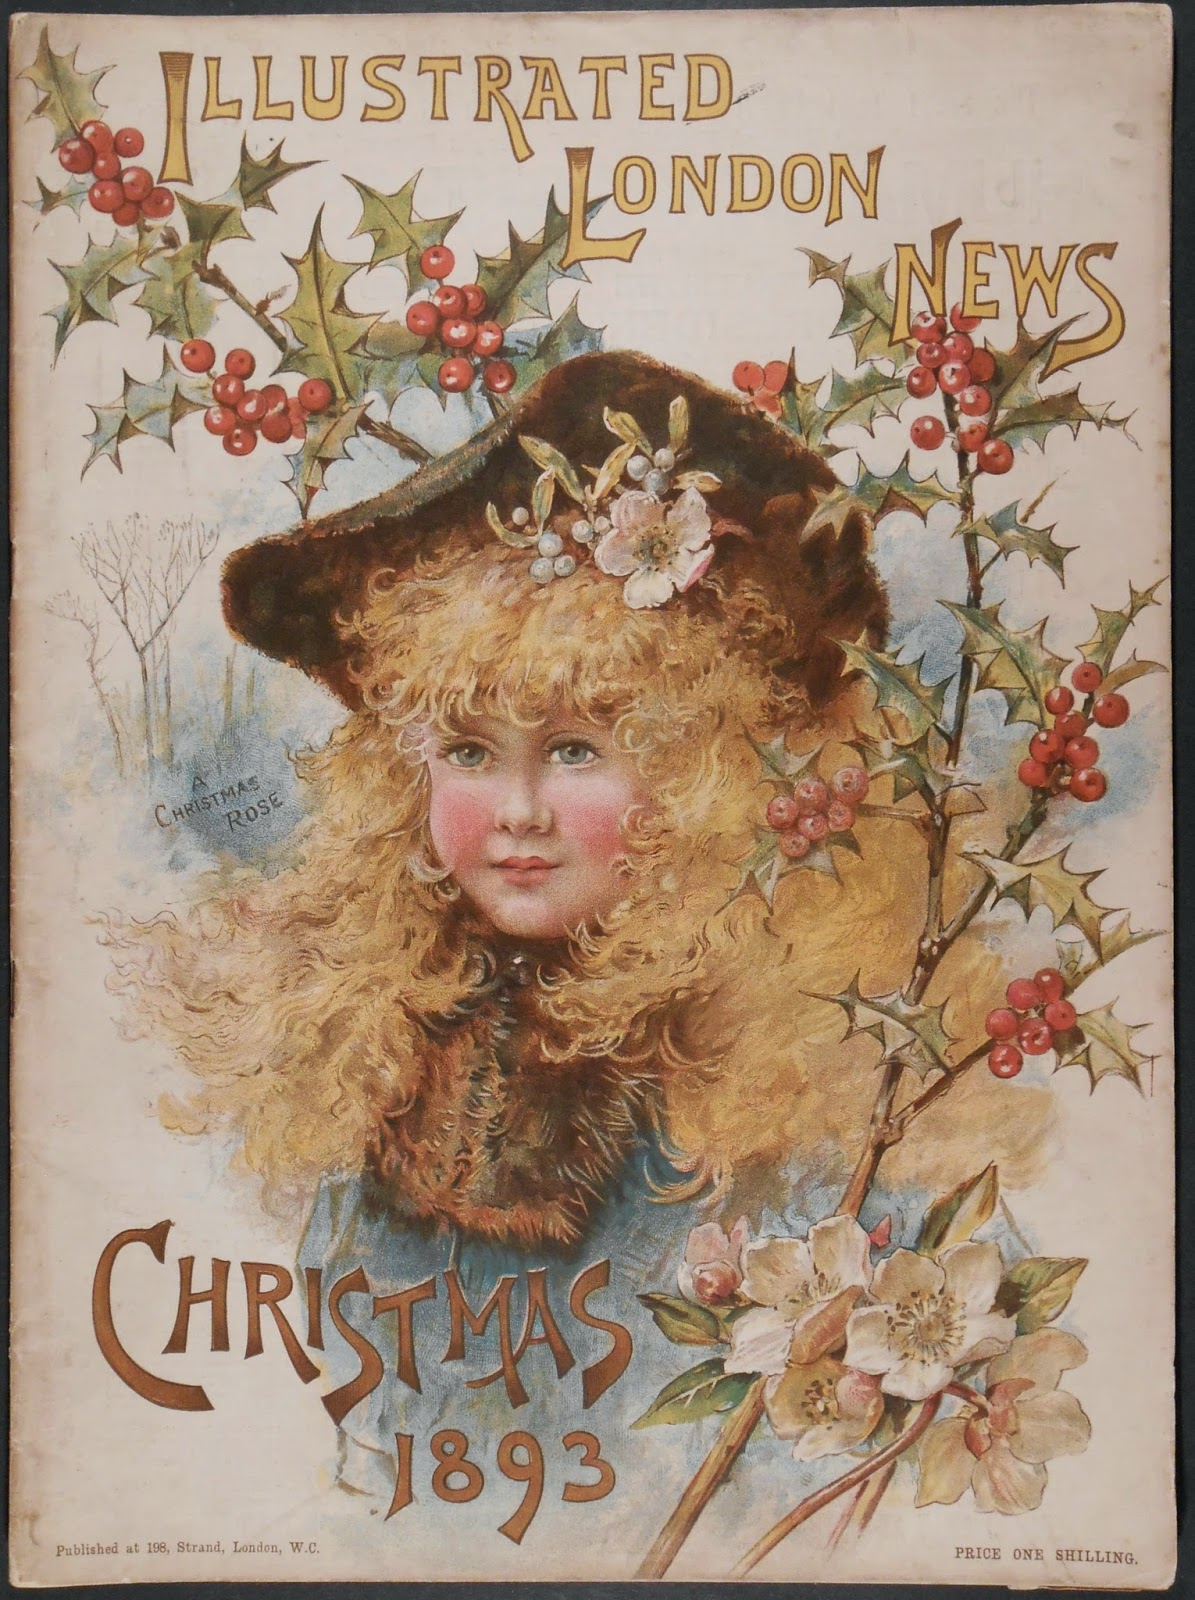 The cover for Illustrated London News, Christmas 1893. The cover features a chromolithograph illustration of a blonde girl in a hat, framed and backed by branches of holly and white Christmas roses (hellebore).